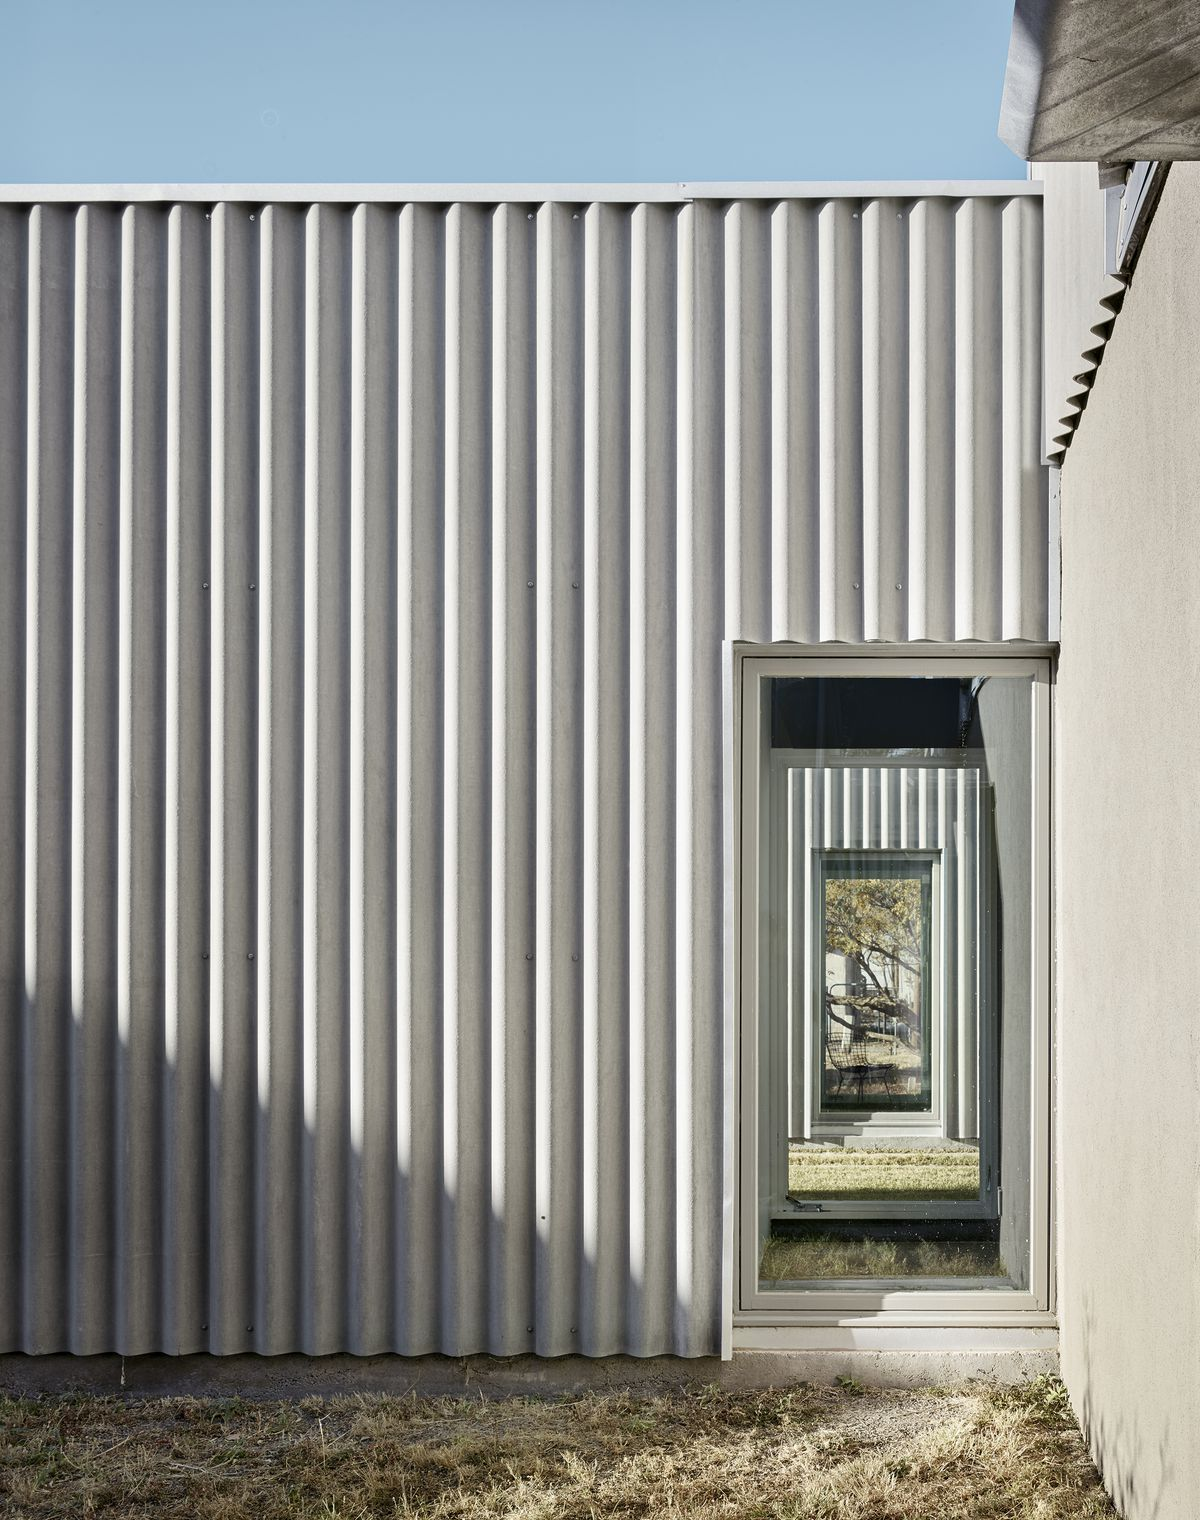 A corrugated, gray siding covers the new part of the building.